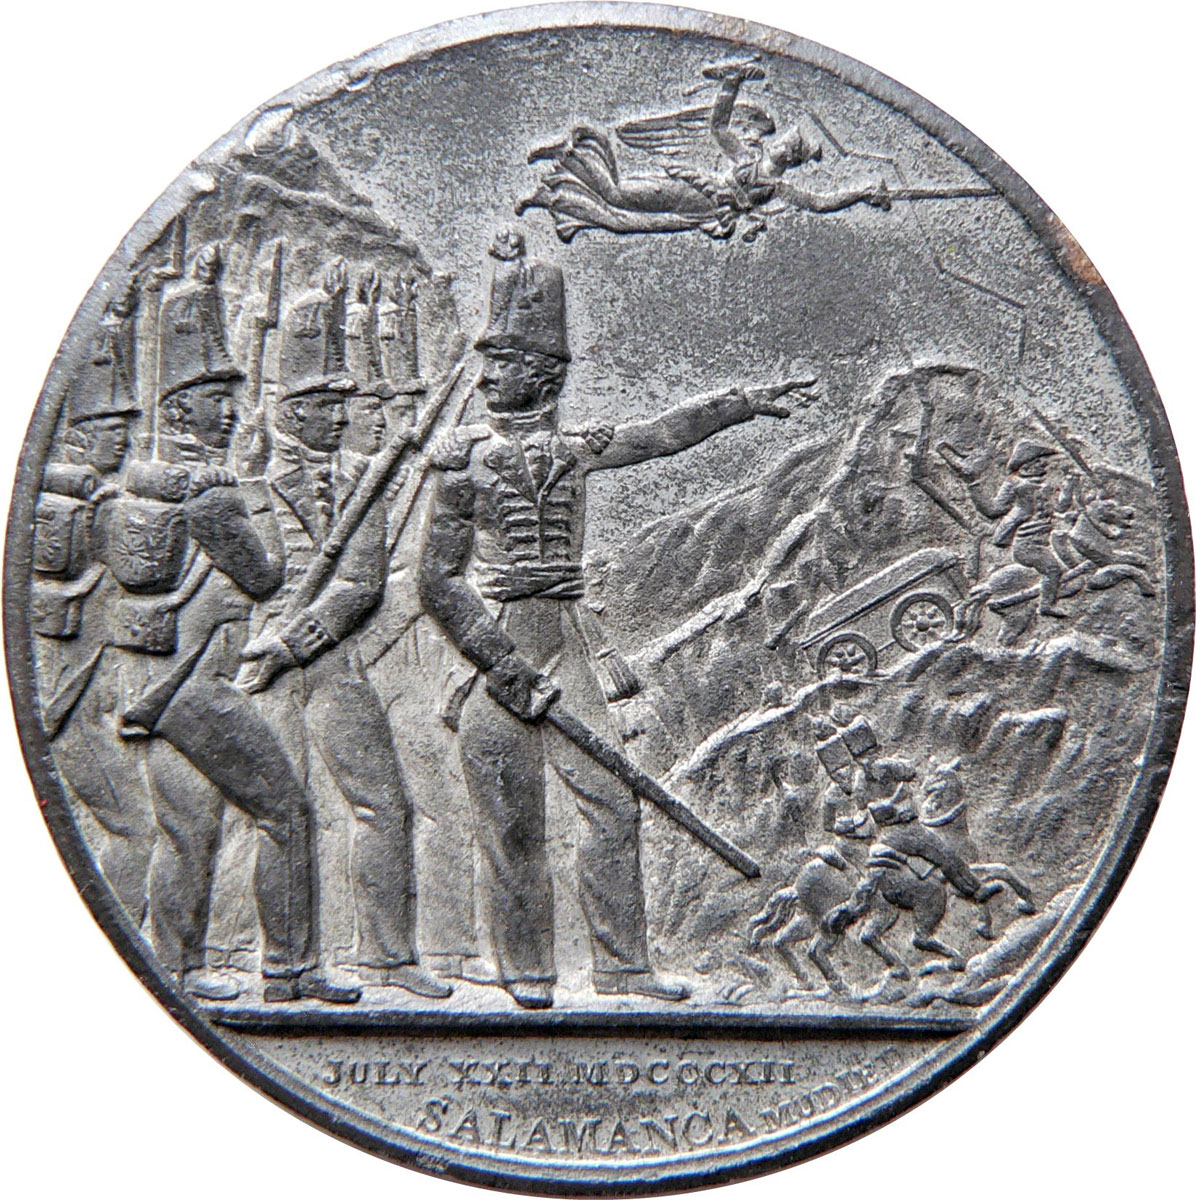 Medal issued in London commemorating the Battle of Salamanca on 22nd July 1812 during the Peninsular War, also known as the Battle of Los Arapiles or Les Arapiles